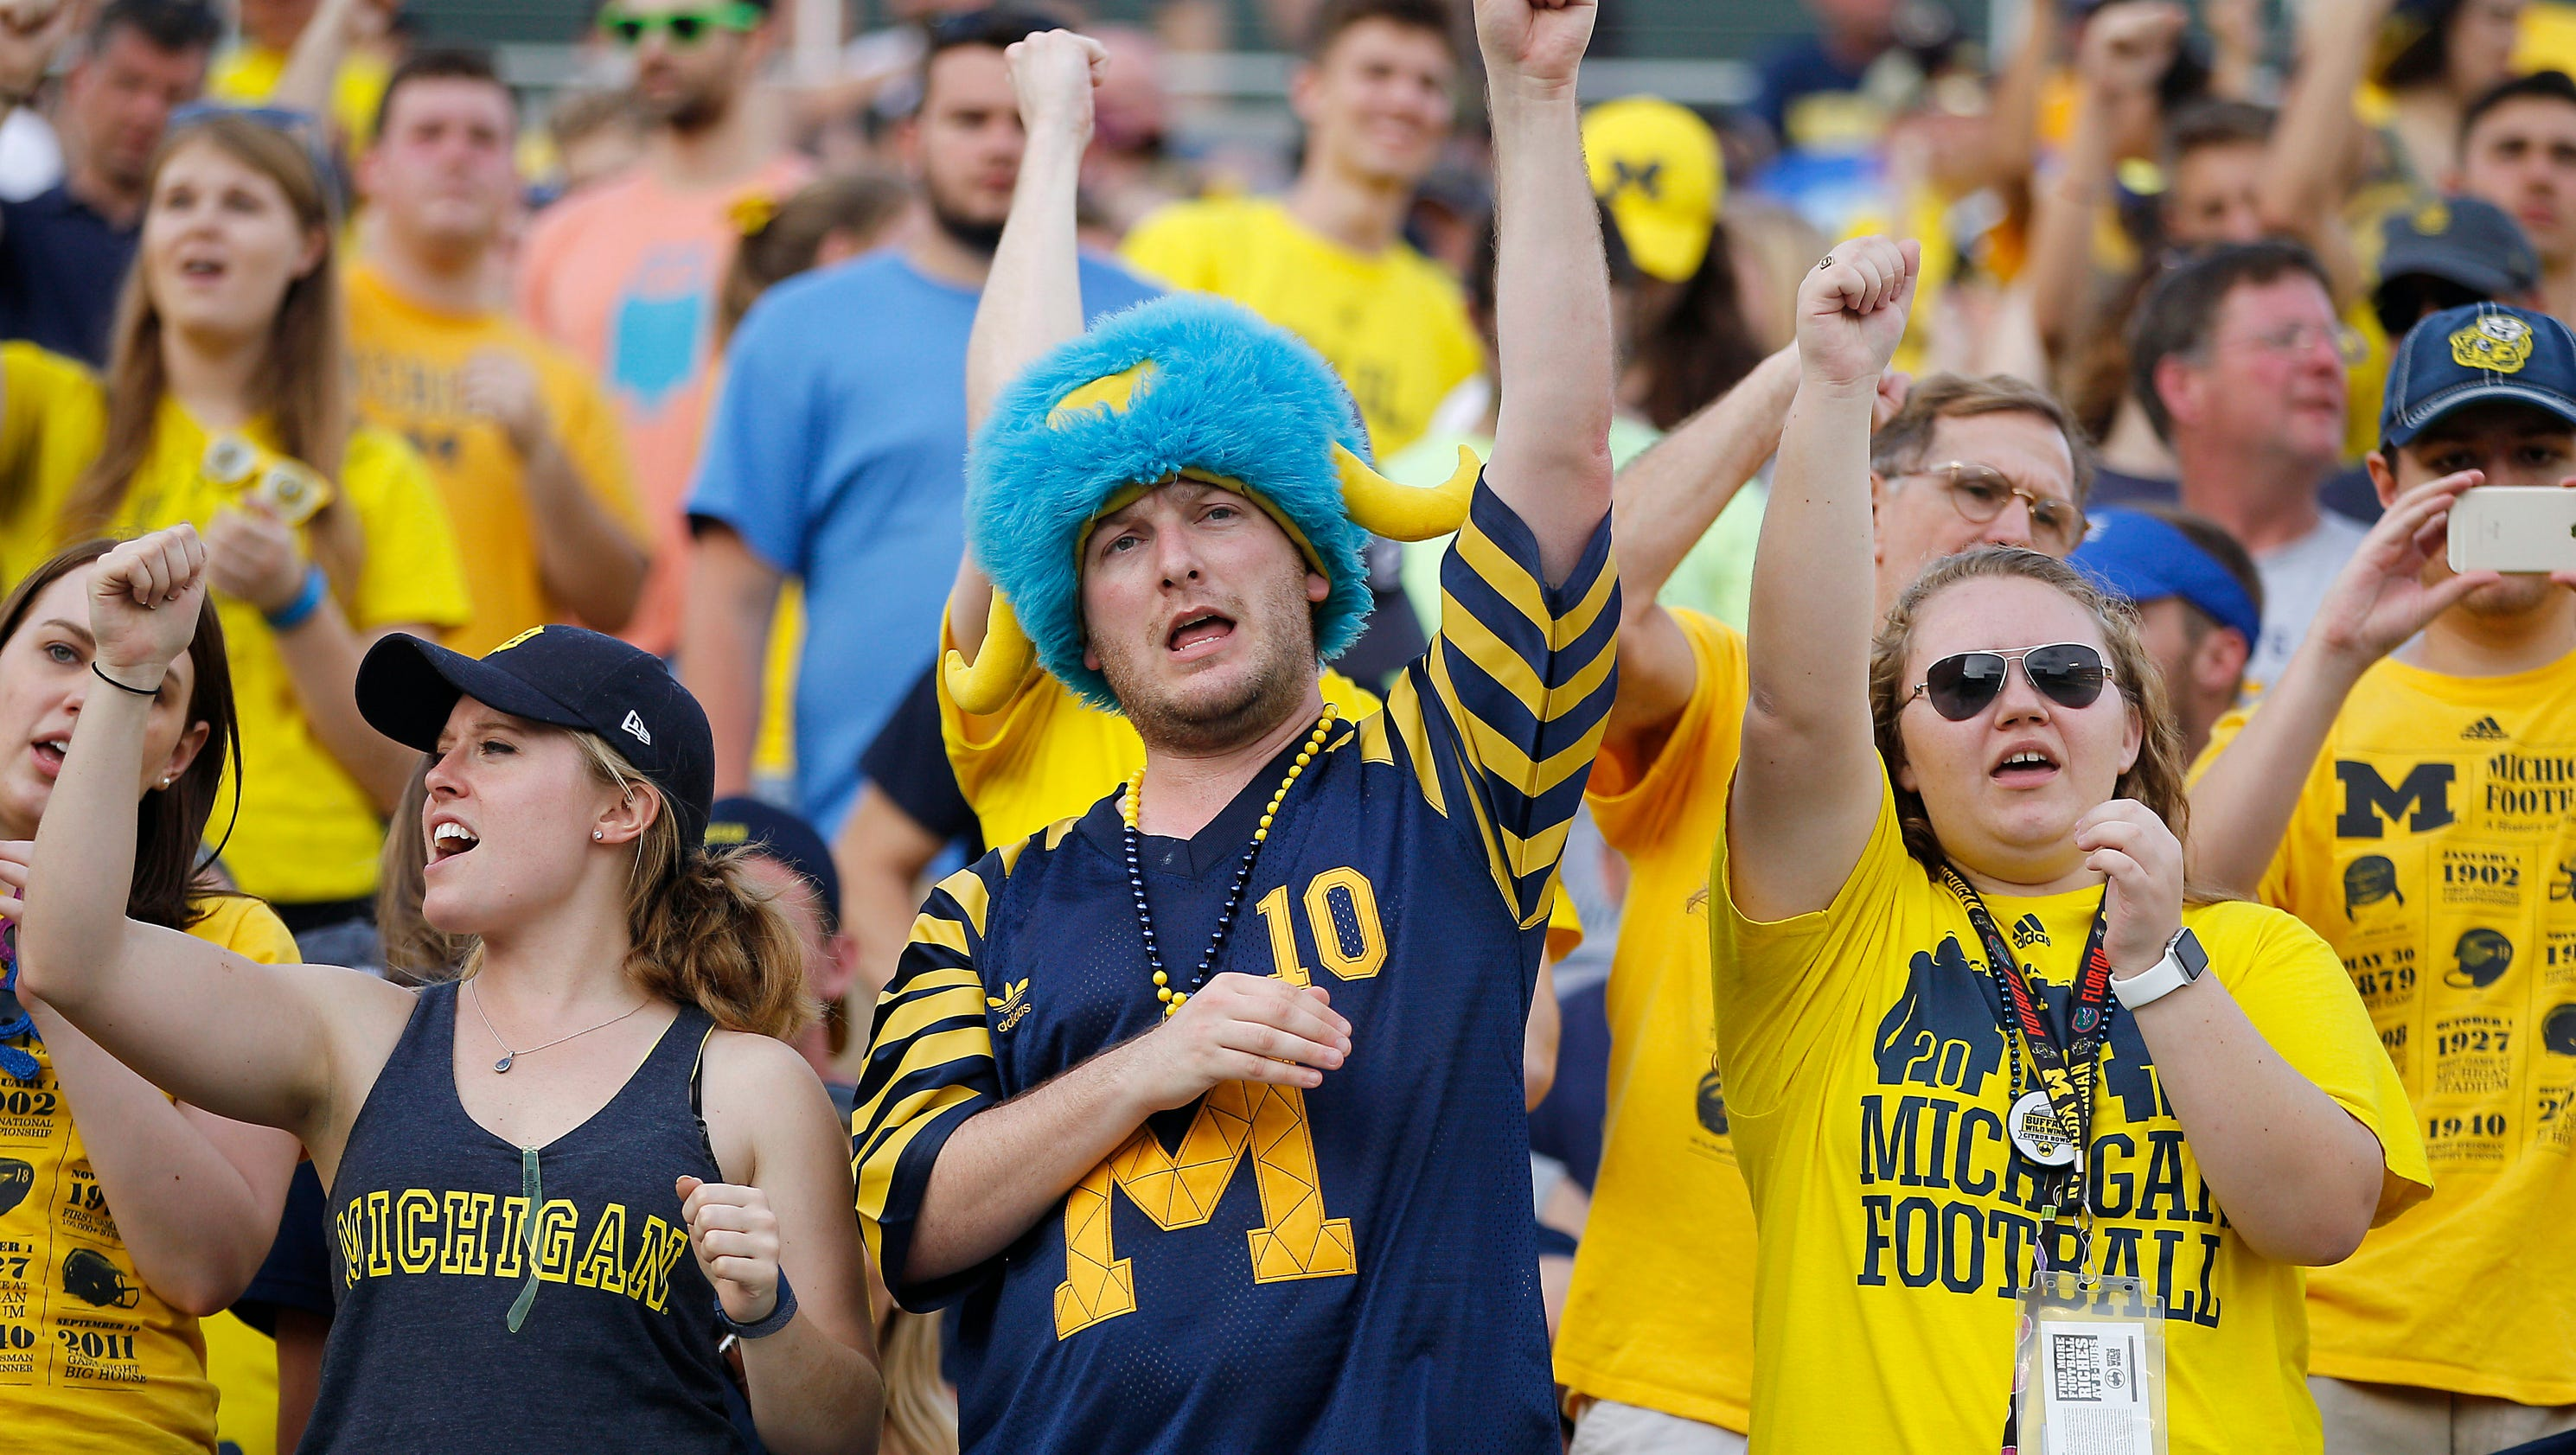 MNB: Nike switch is just another boost for Michigan